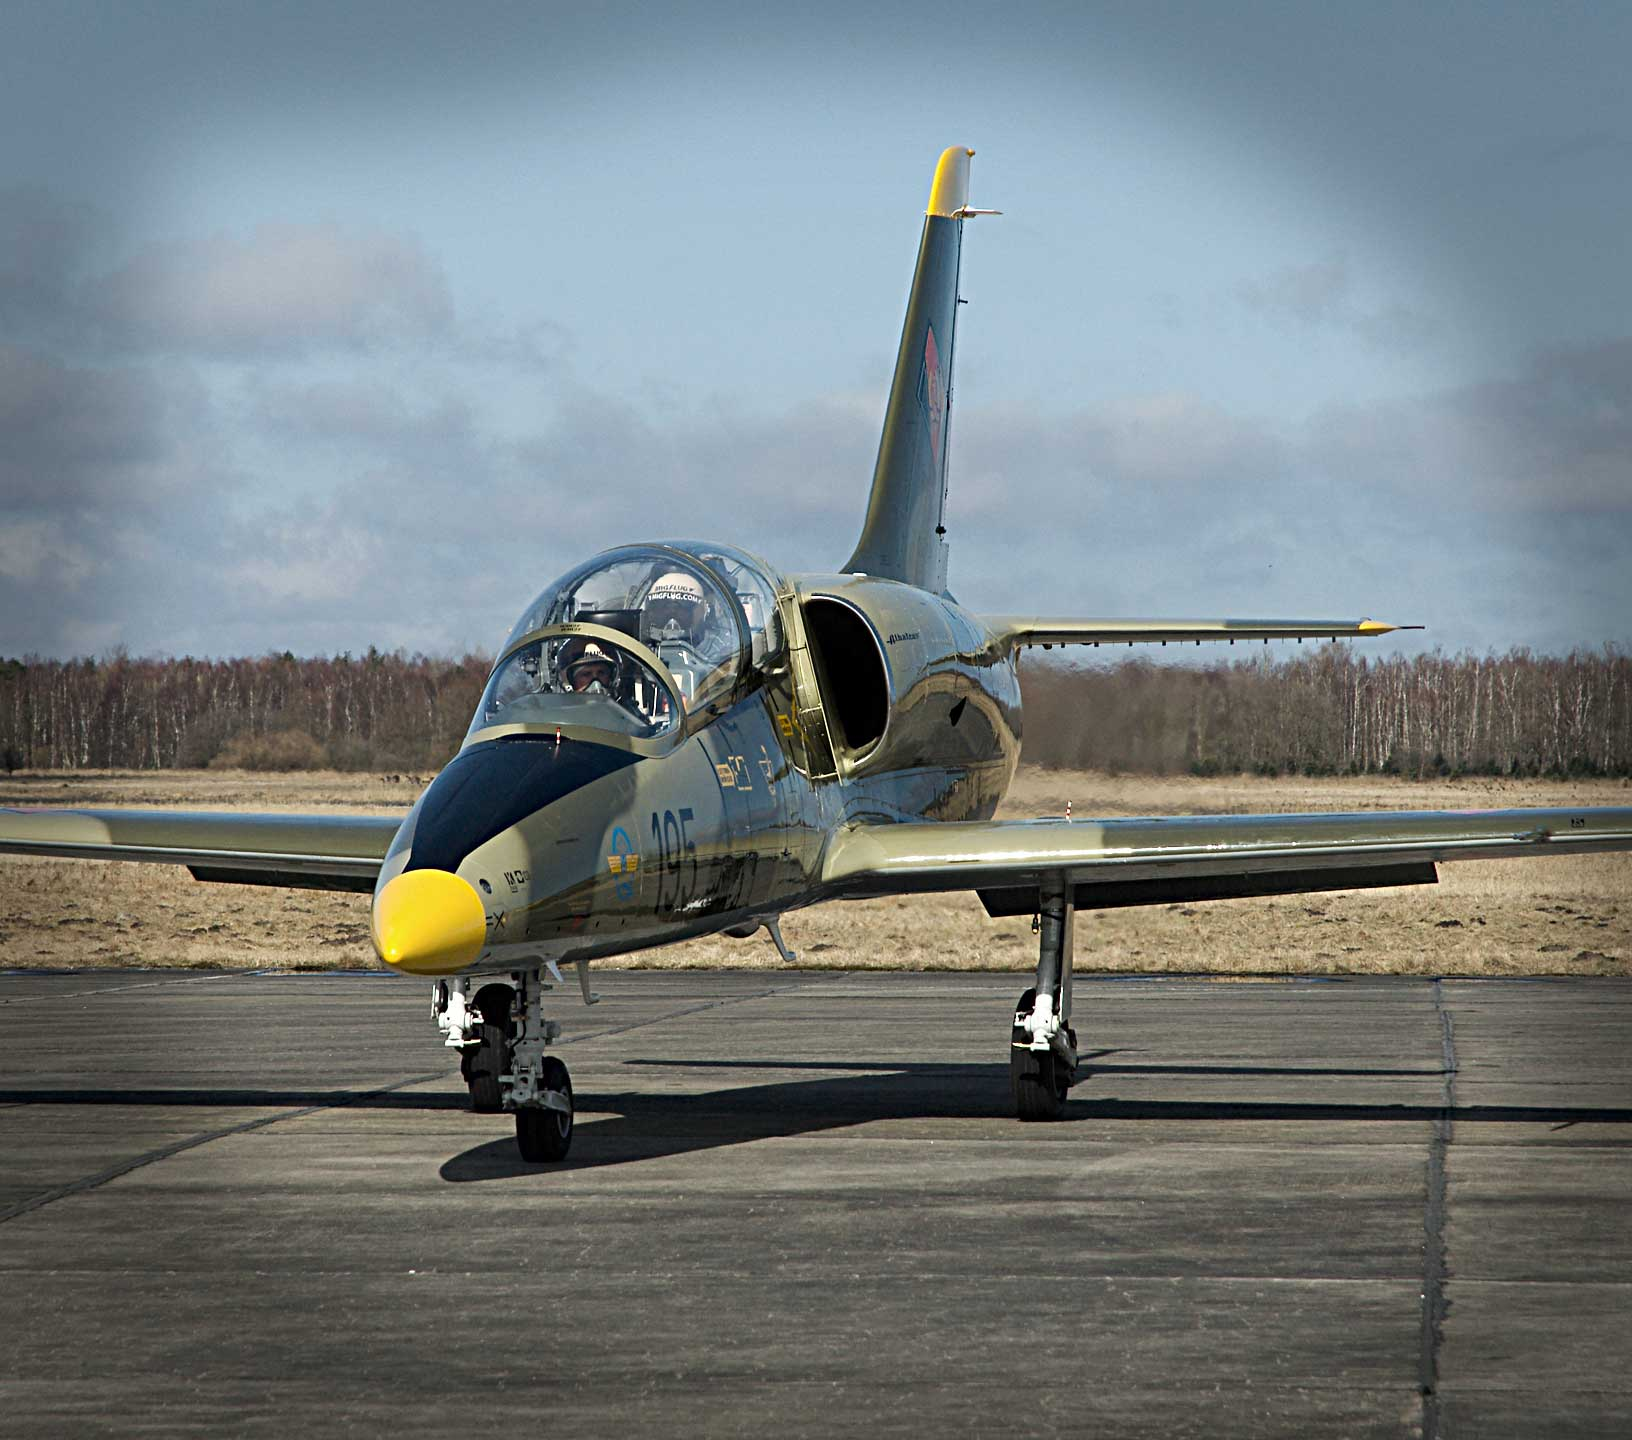 L-39 Fighter Jet Ride Along. Fighter Rides At Attractive